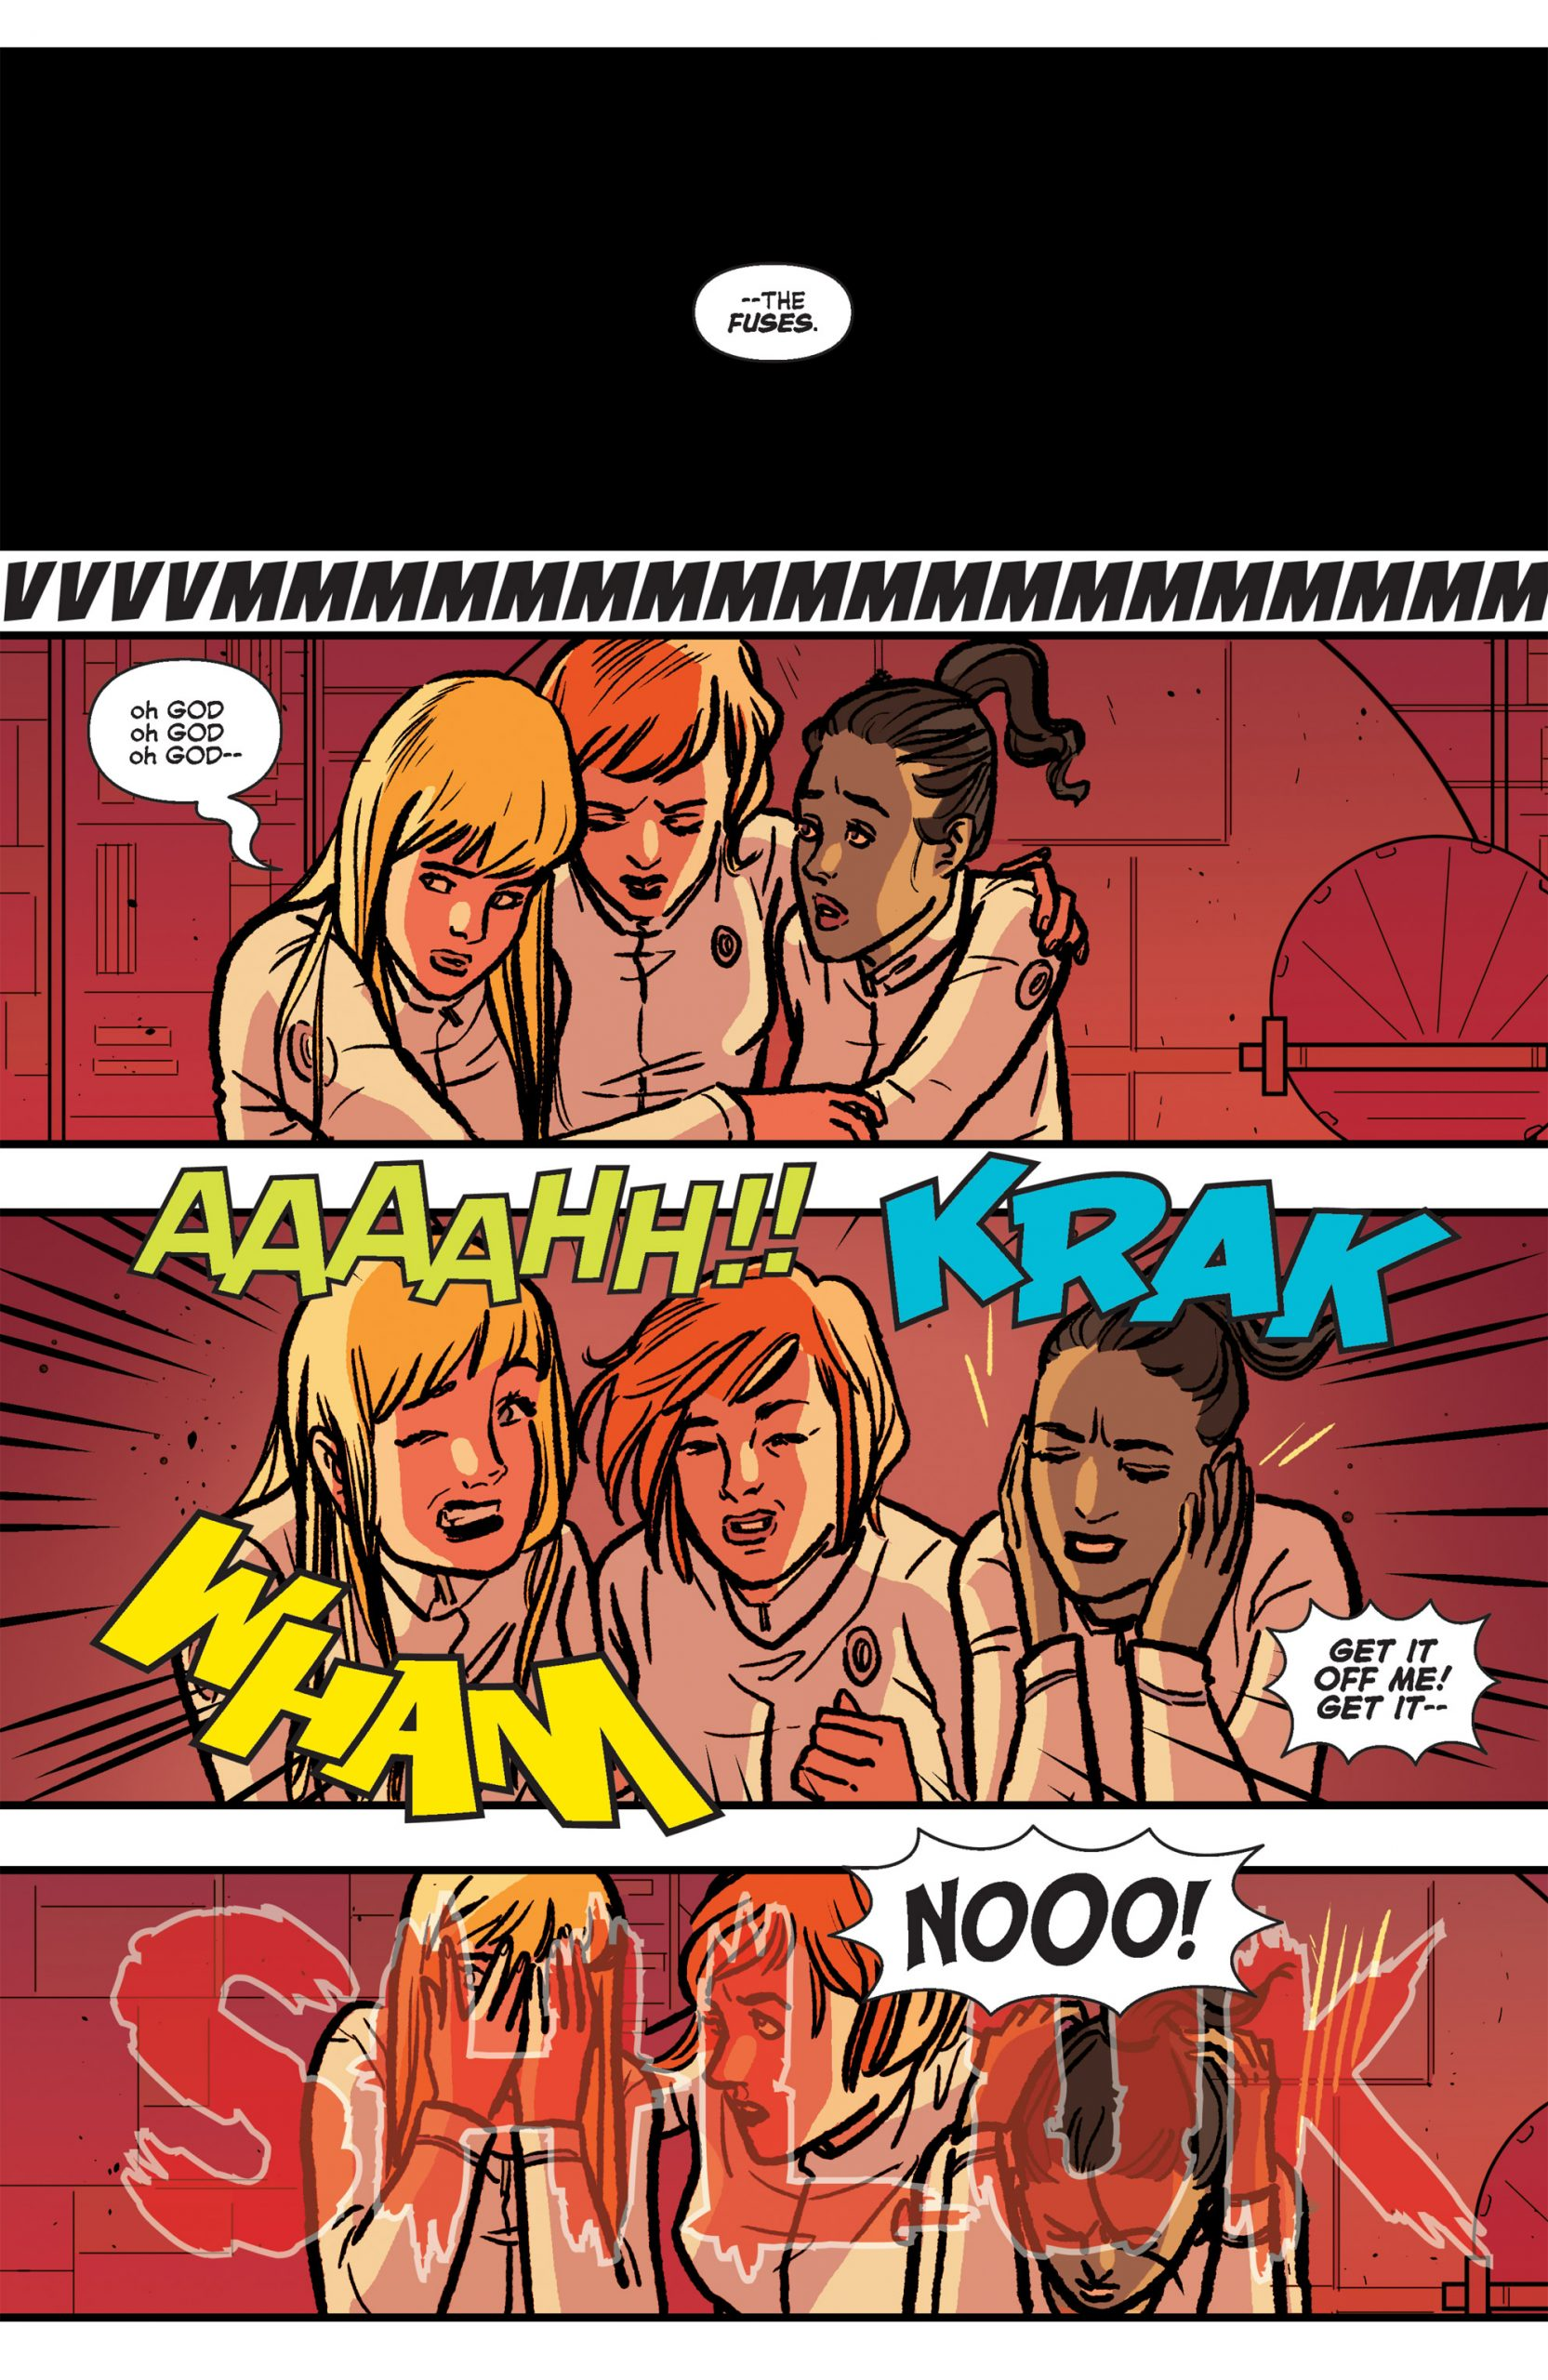 Hearing the noise of the alien attacking crew members in Josie and the Pussycats in Space #4.